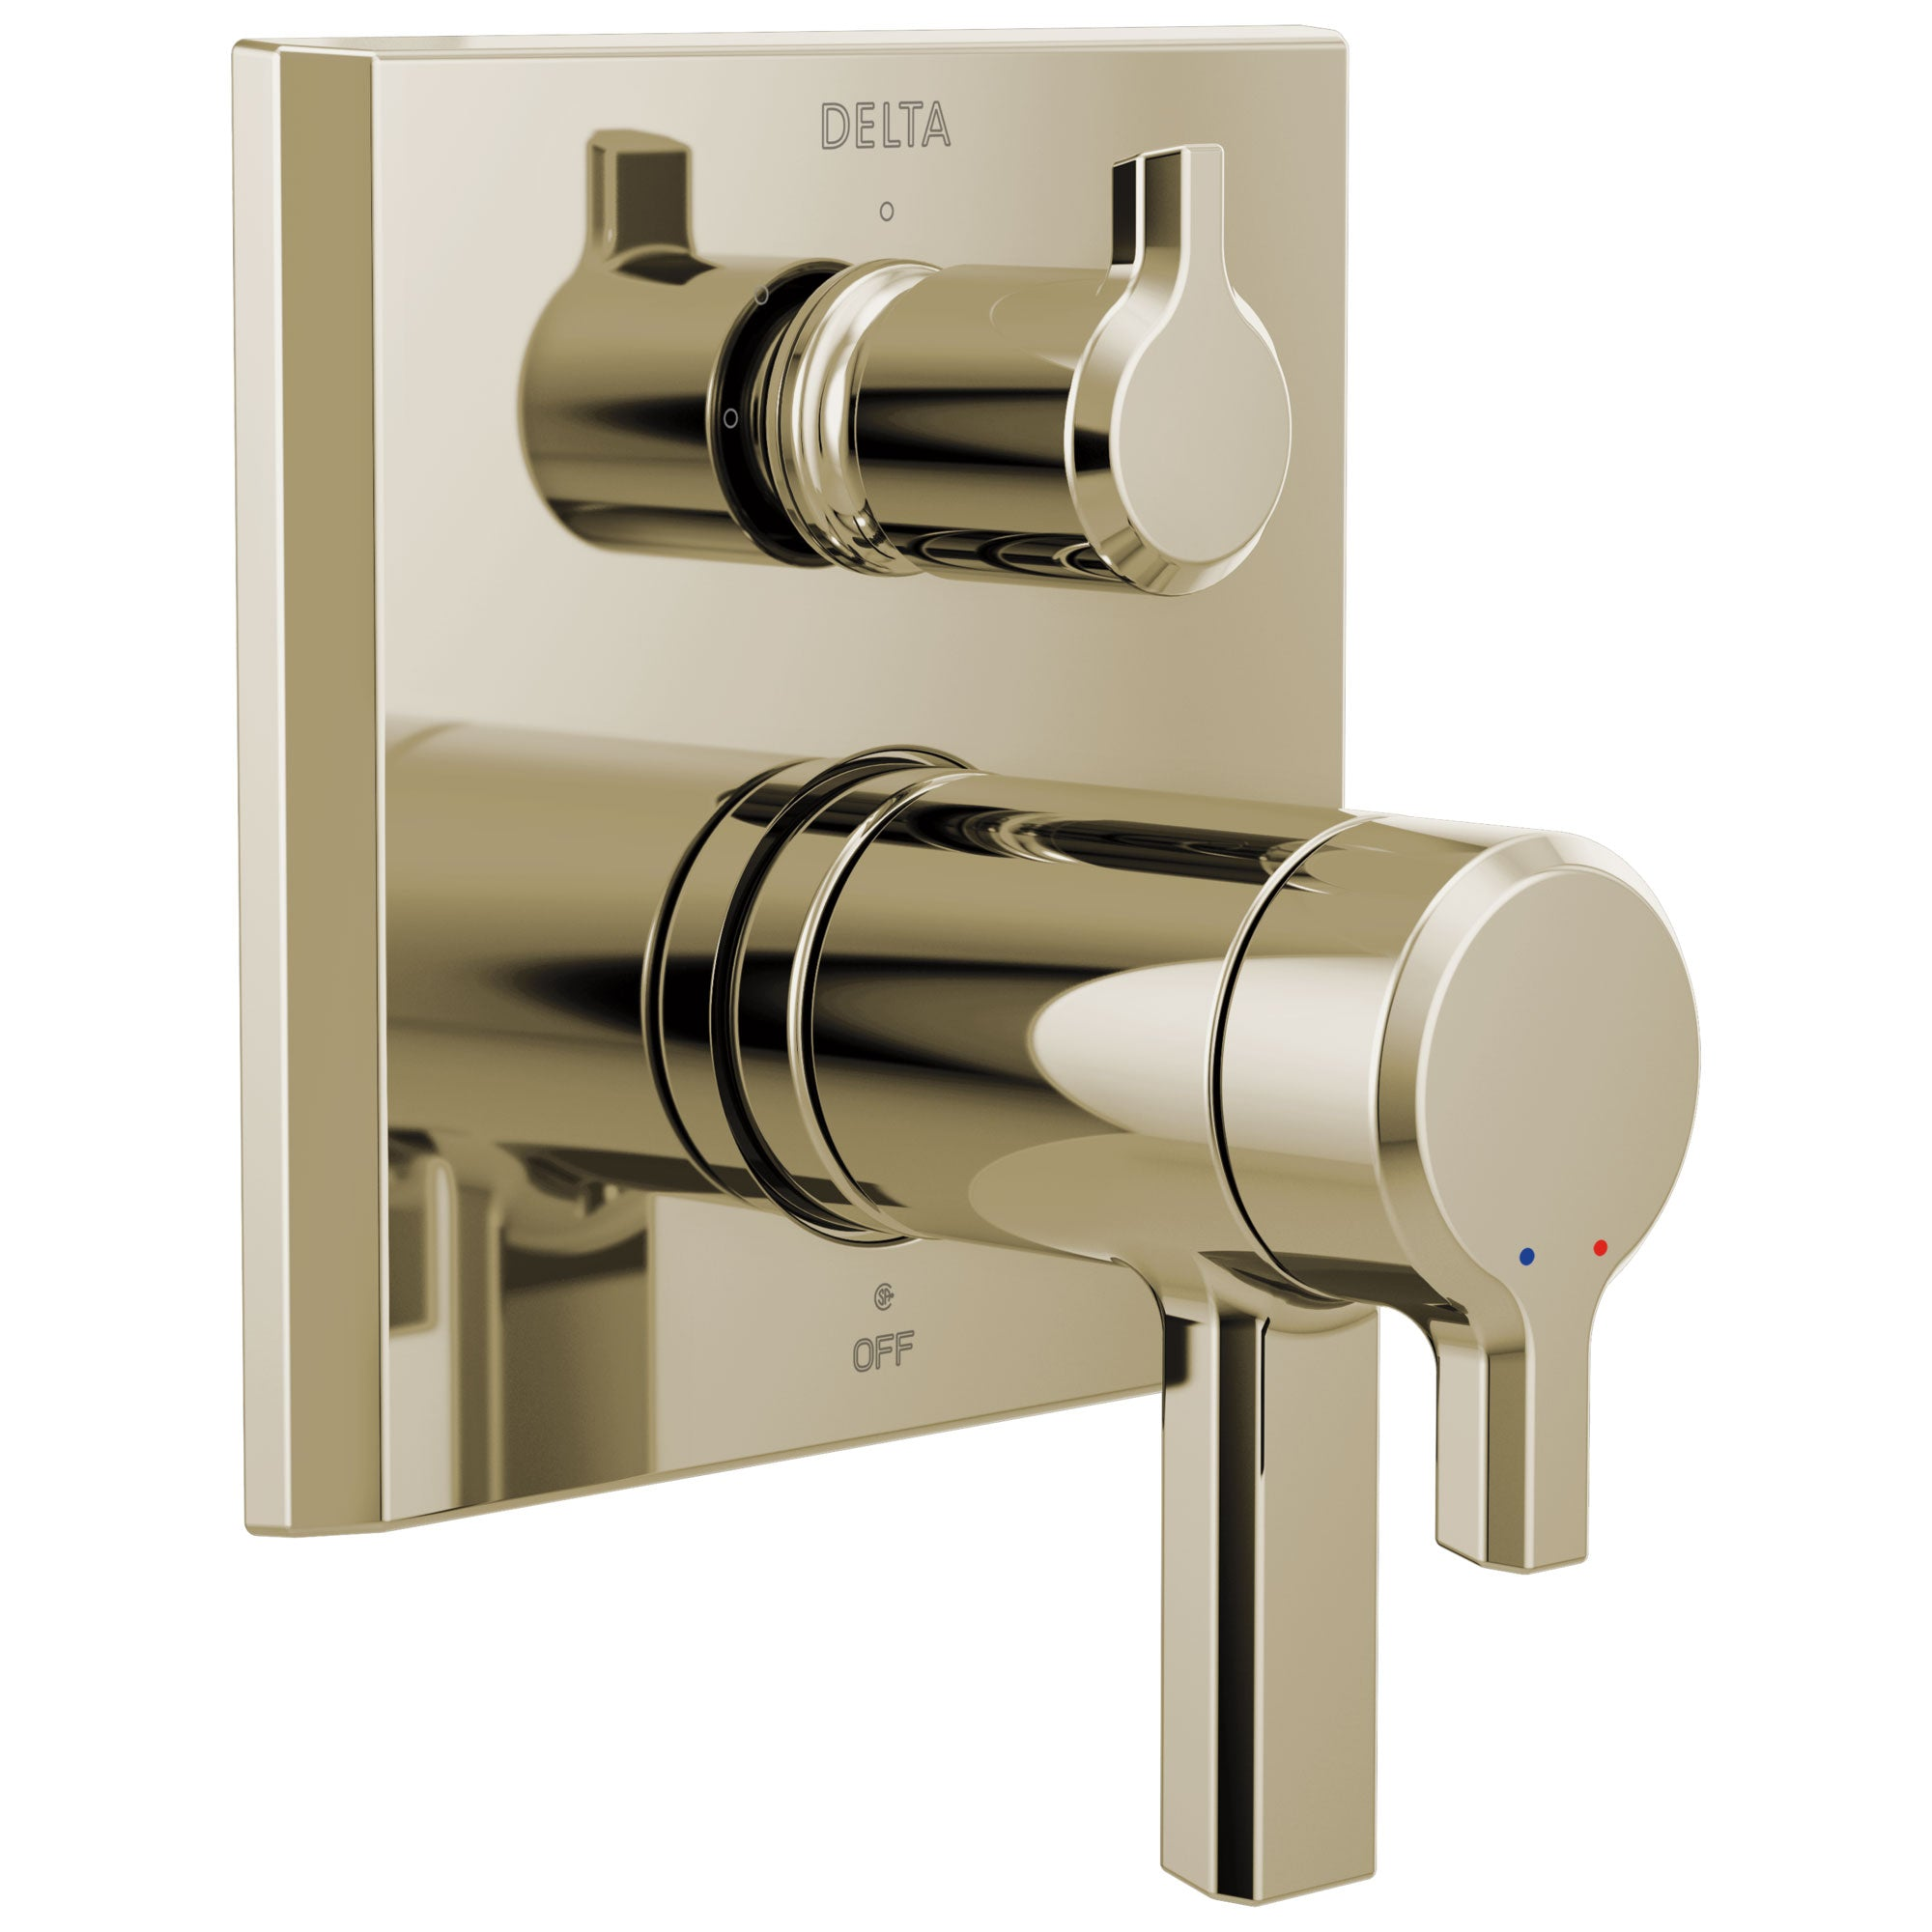 Delta Pivotal Modern Polished Nickel Finish Thermostatic Shower System Control with 3-Setting Integrated Diverter Includes Valve and Handles D3676V